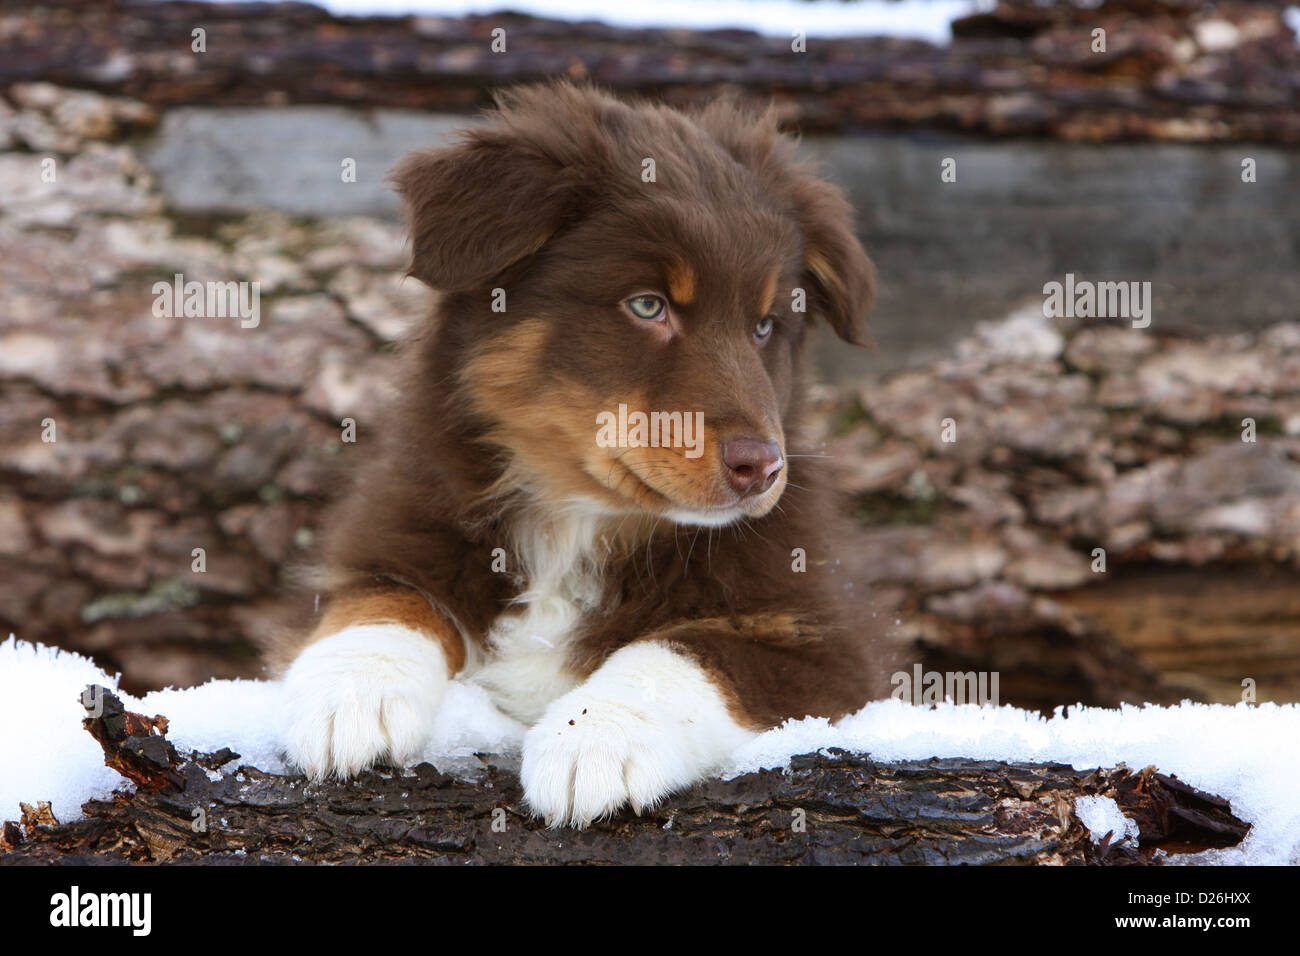 Dog Australian Shepherd Aussie Puppy Red Tricolor Lying In Snow Stock Photo Alamy